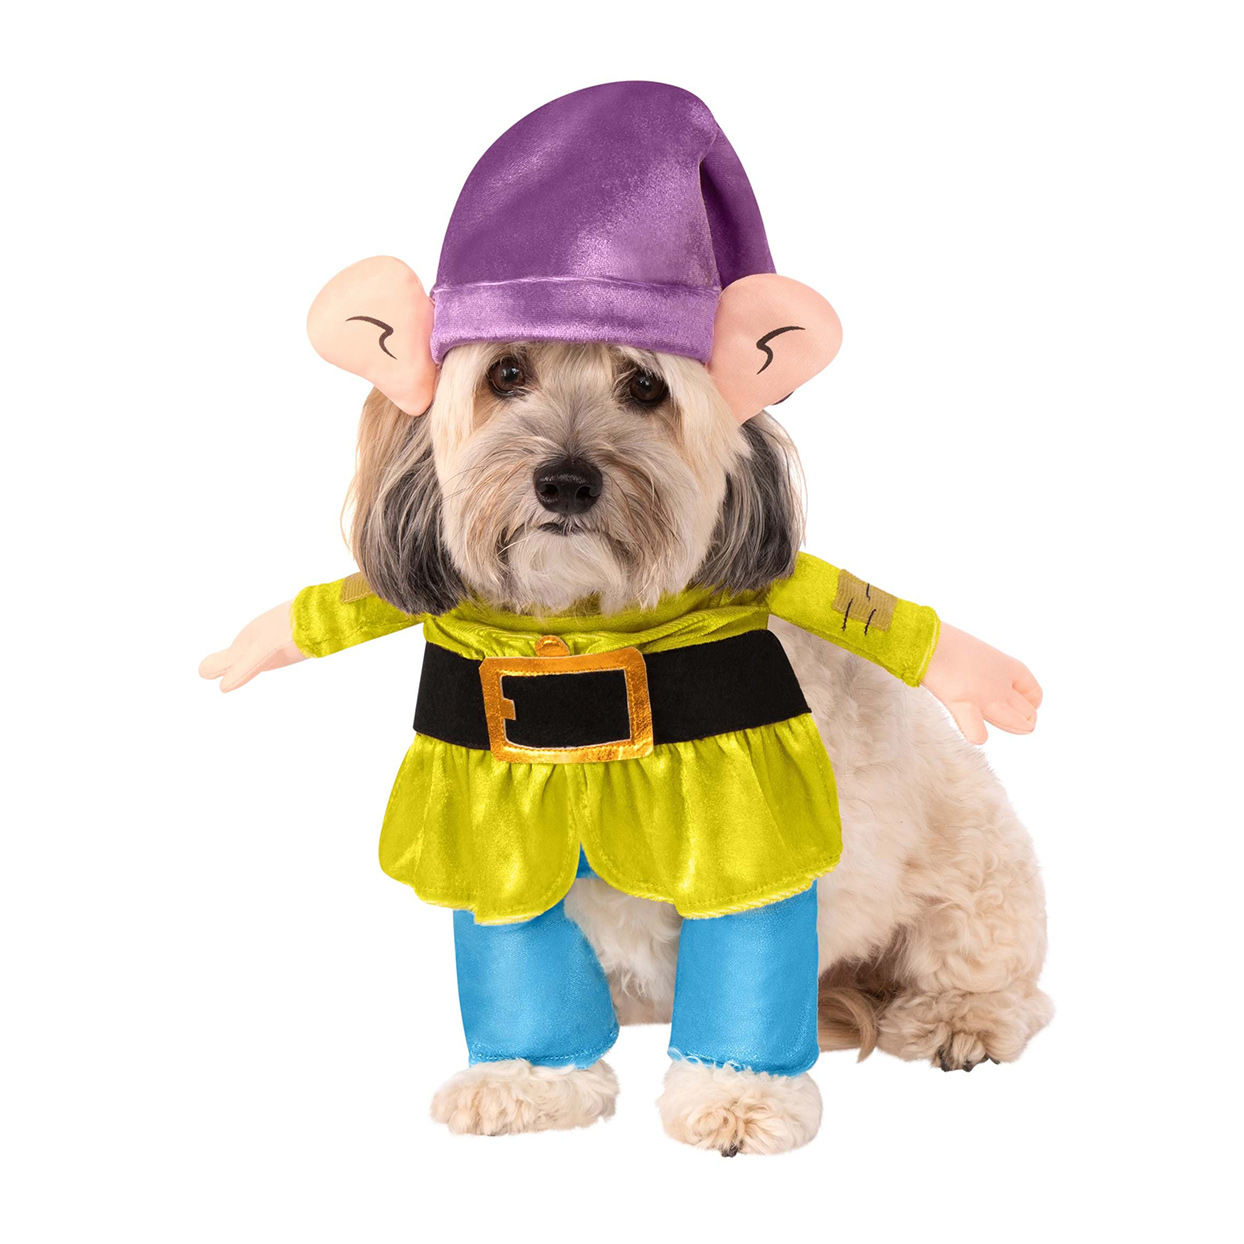 Dog wearing a Snow White and the Seven Dwarfs Dopey Costume on a white background